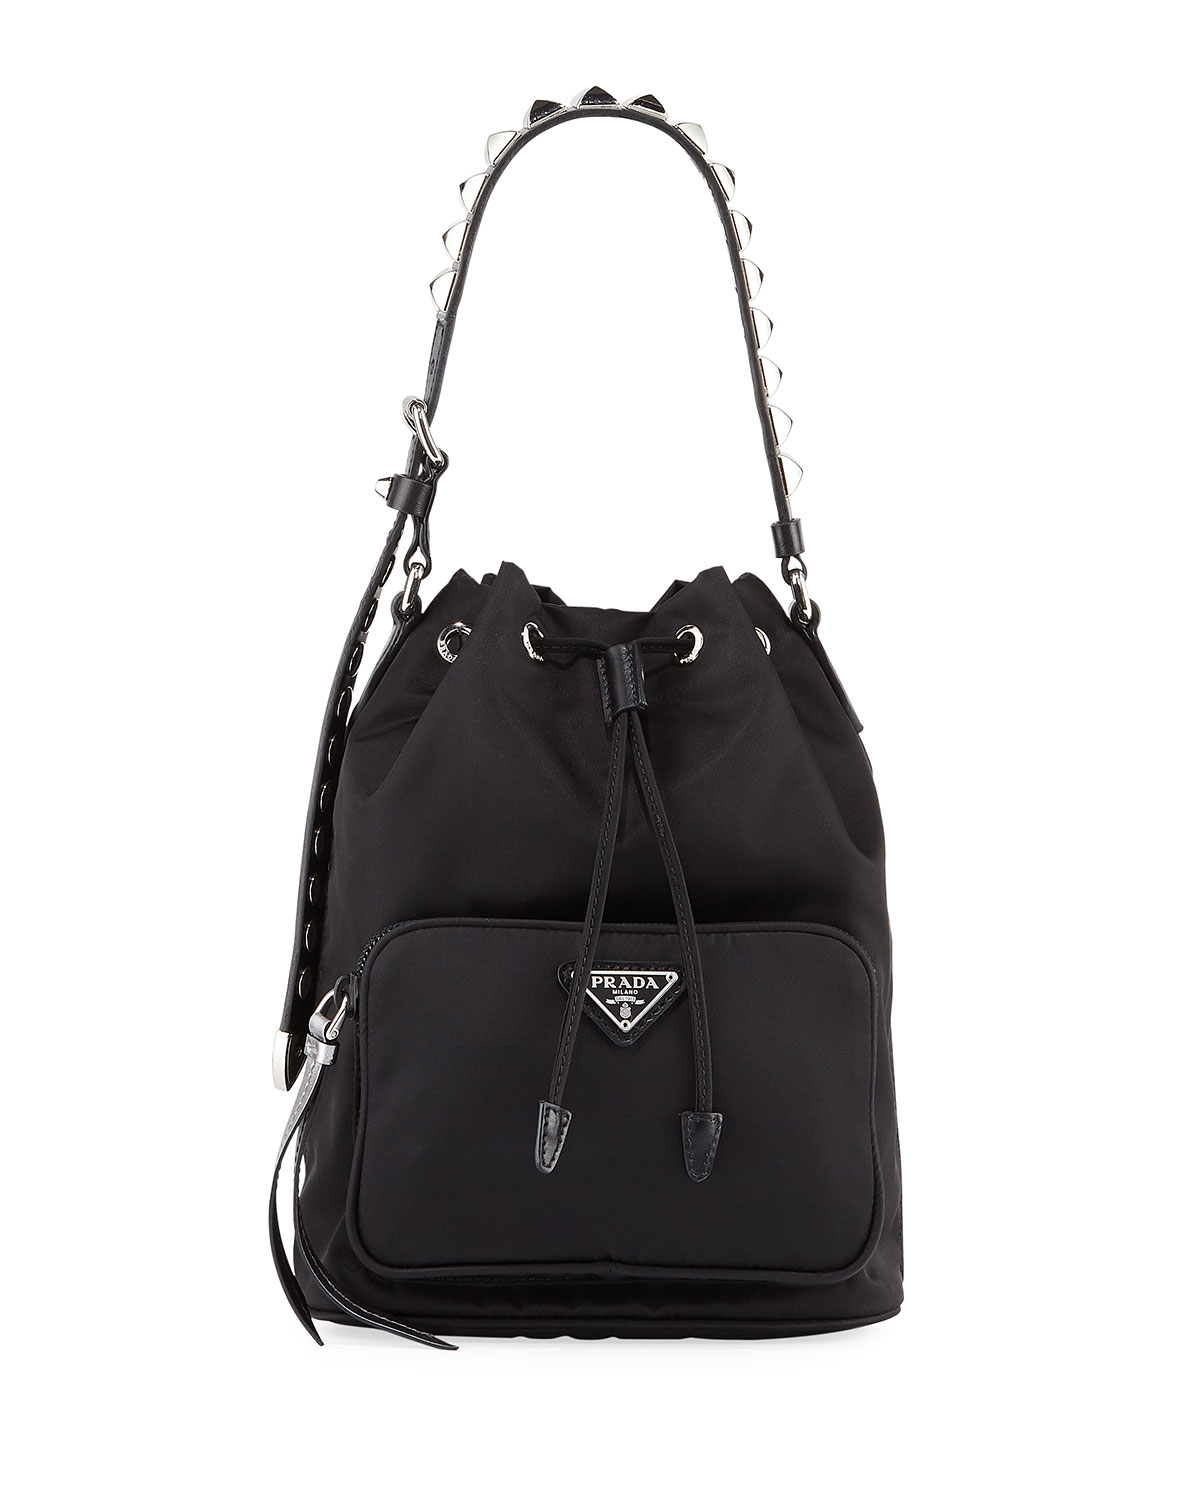 21c7a855e903 Prada Prada Black Nylon Bucket Bag with Studding